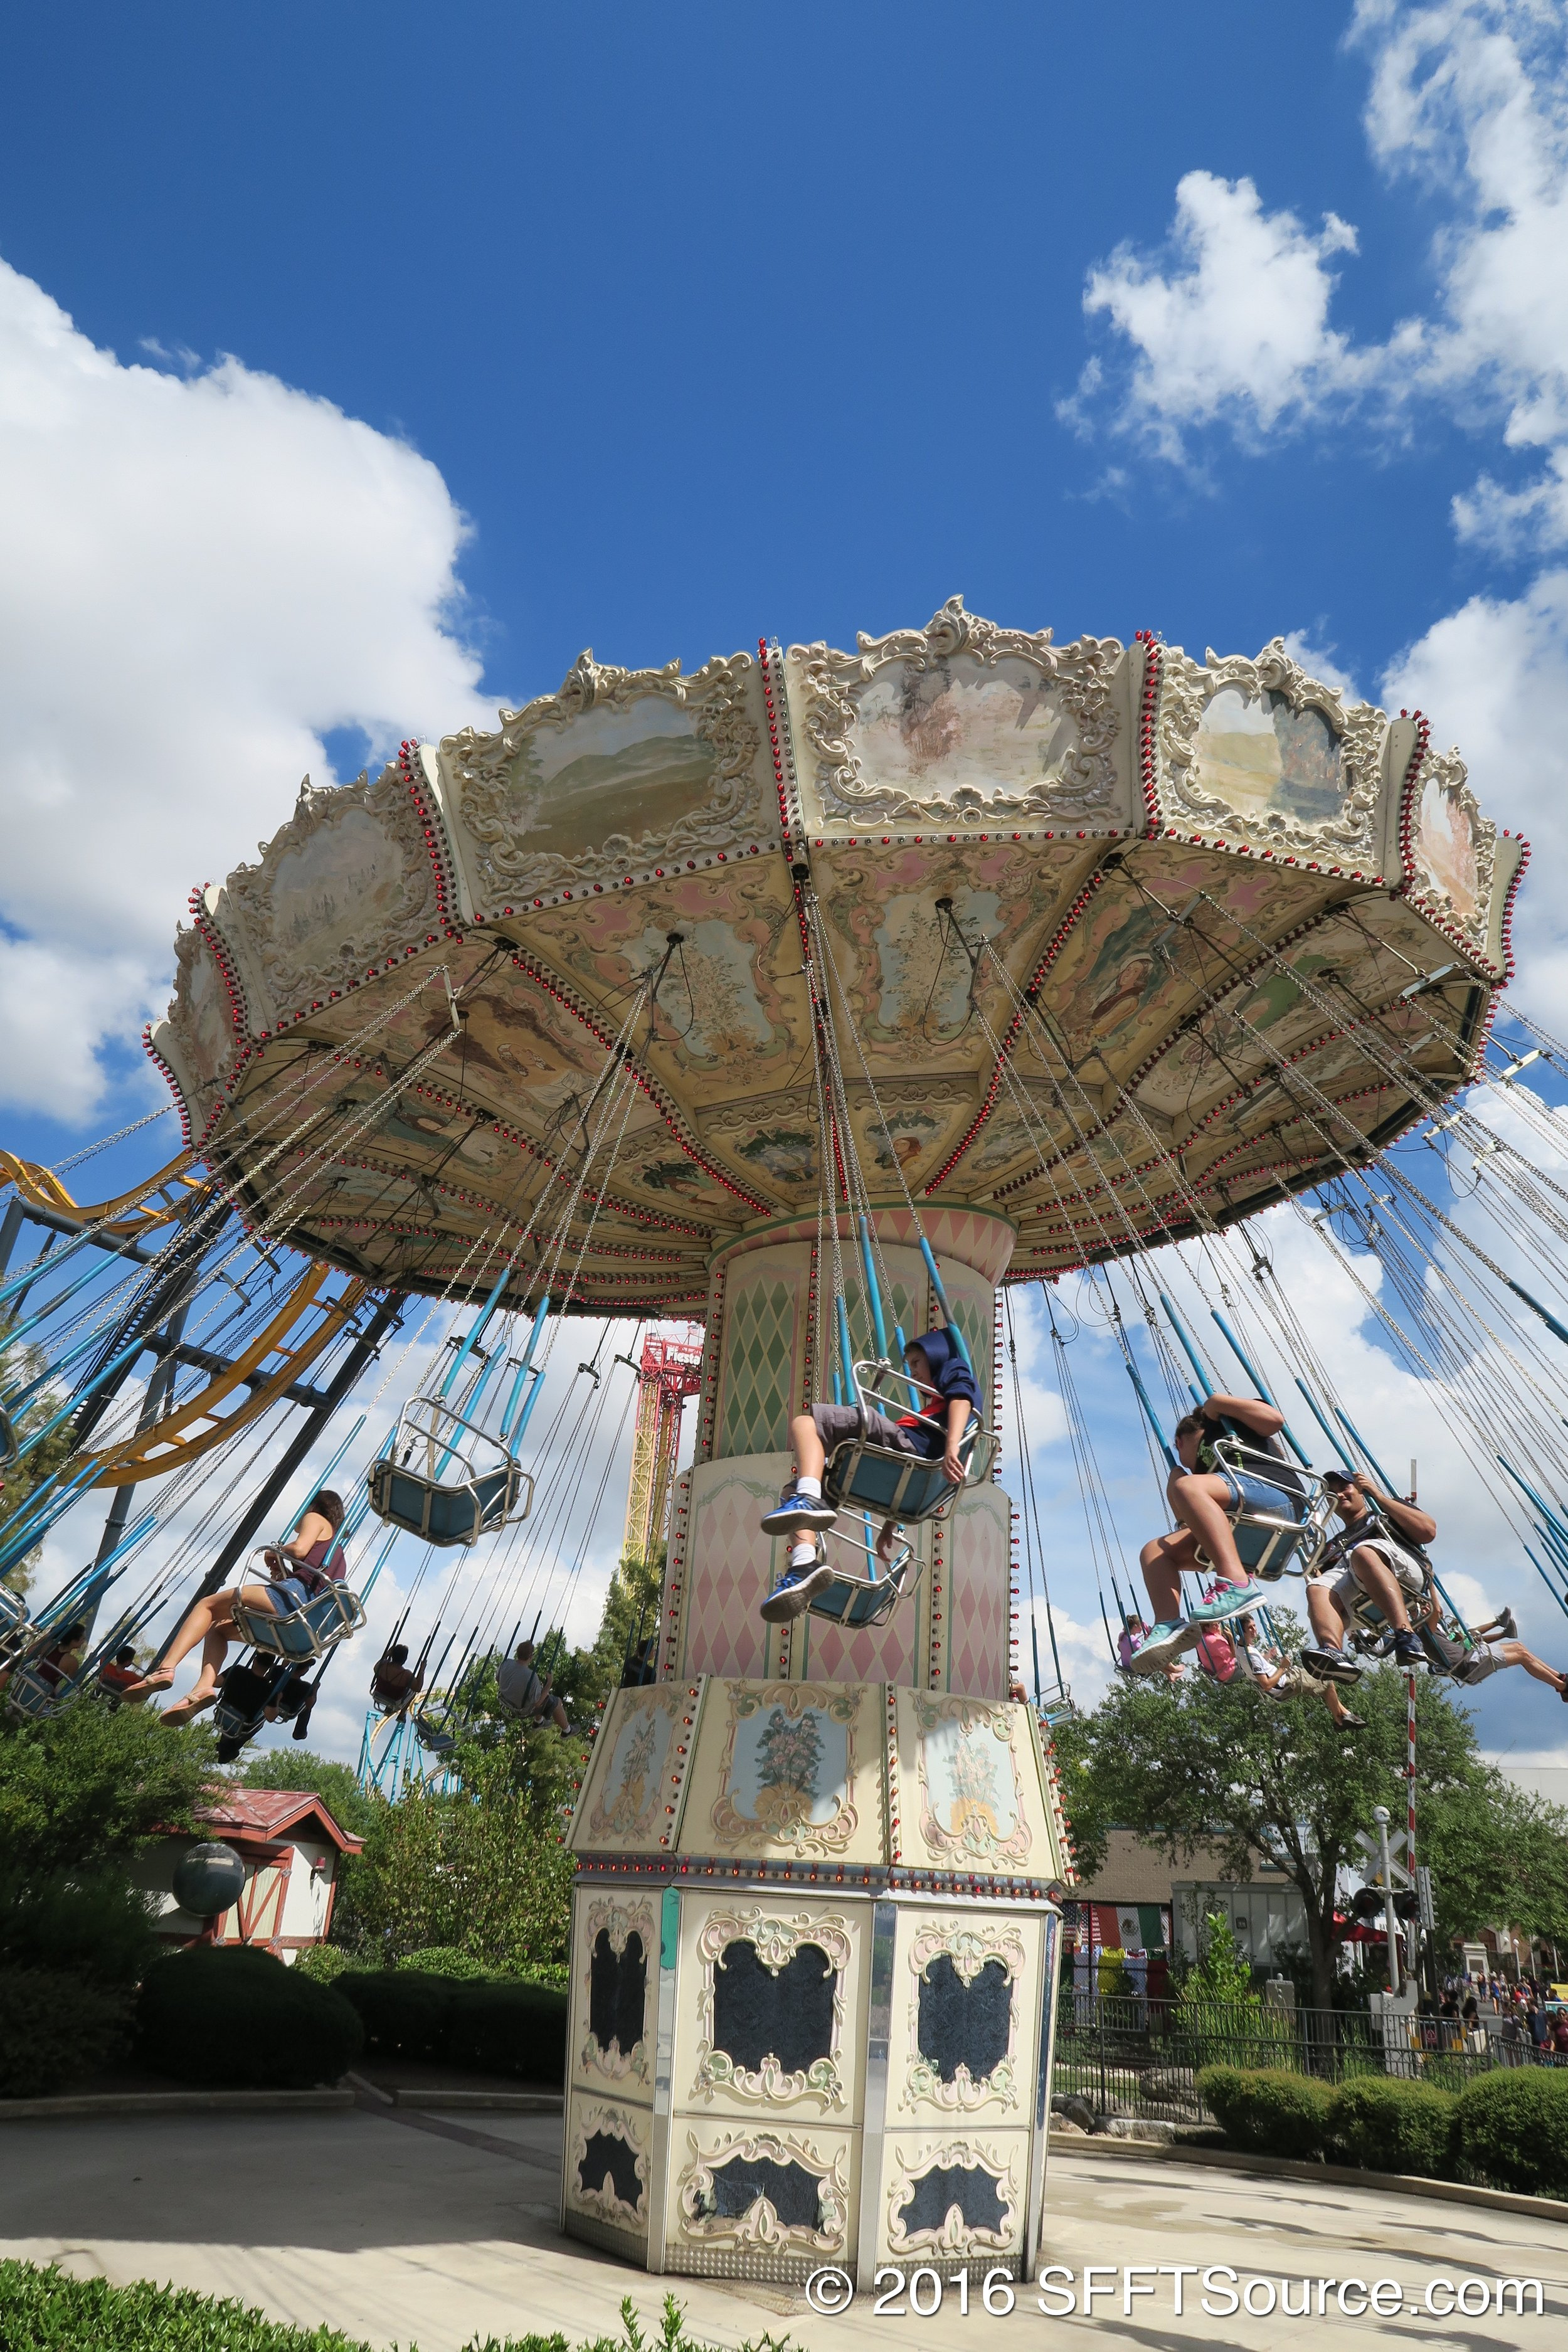 The ride is located in Spassburg.